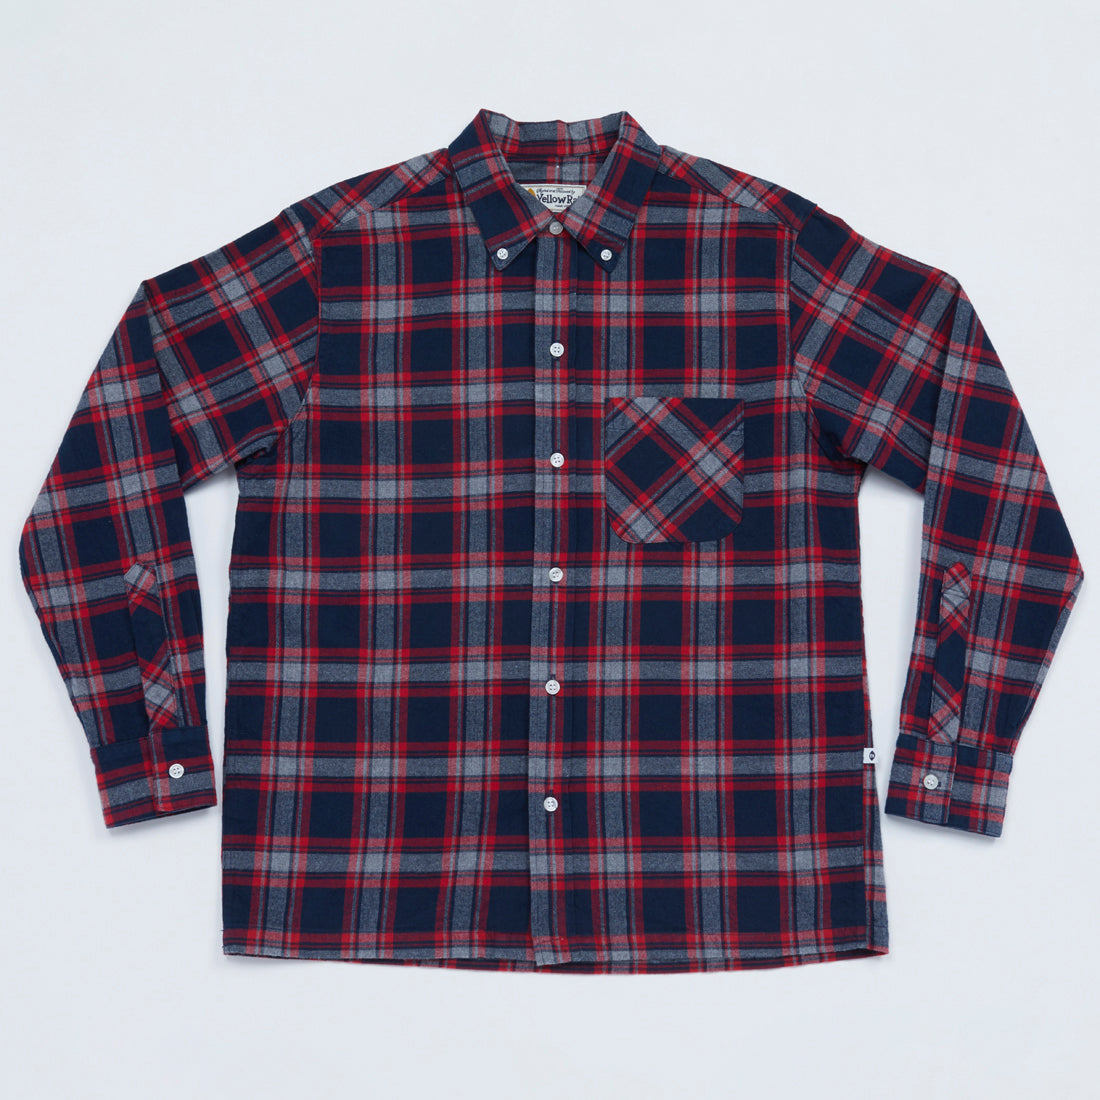 Convertible Collar Button-down in Plaid Flannel (Navy x Red)